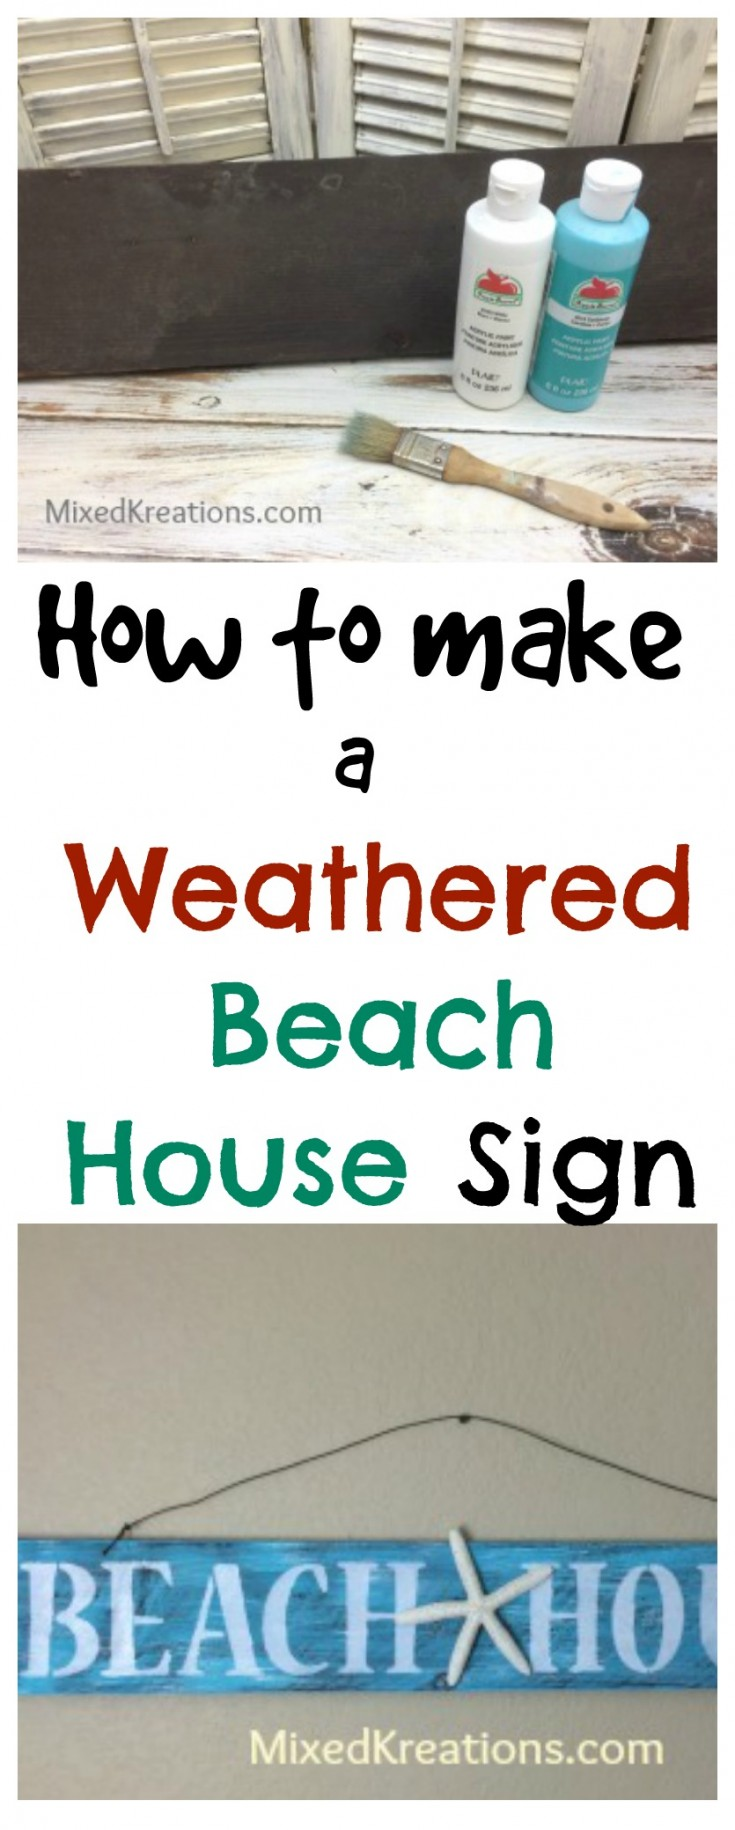 how to make a weathered beach house sign | diy weathered beach sign | diy beachy home decor #BeachSign #WeatheredBeachSign #DiyBeachDecor MixedKreations.com